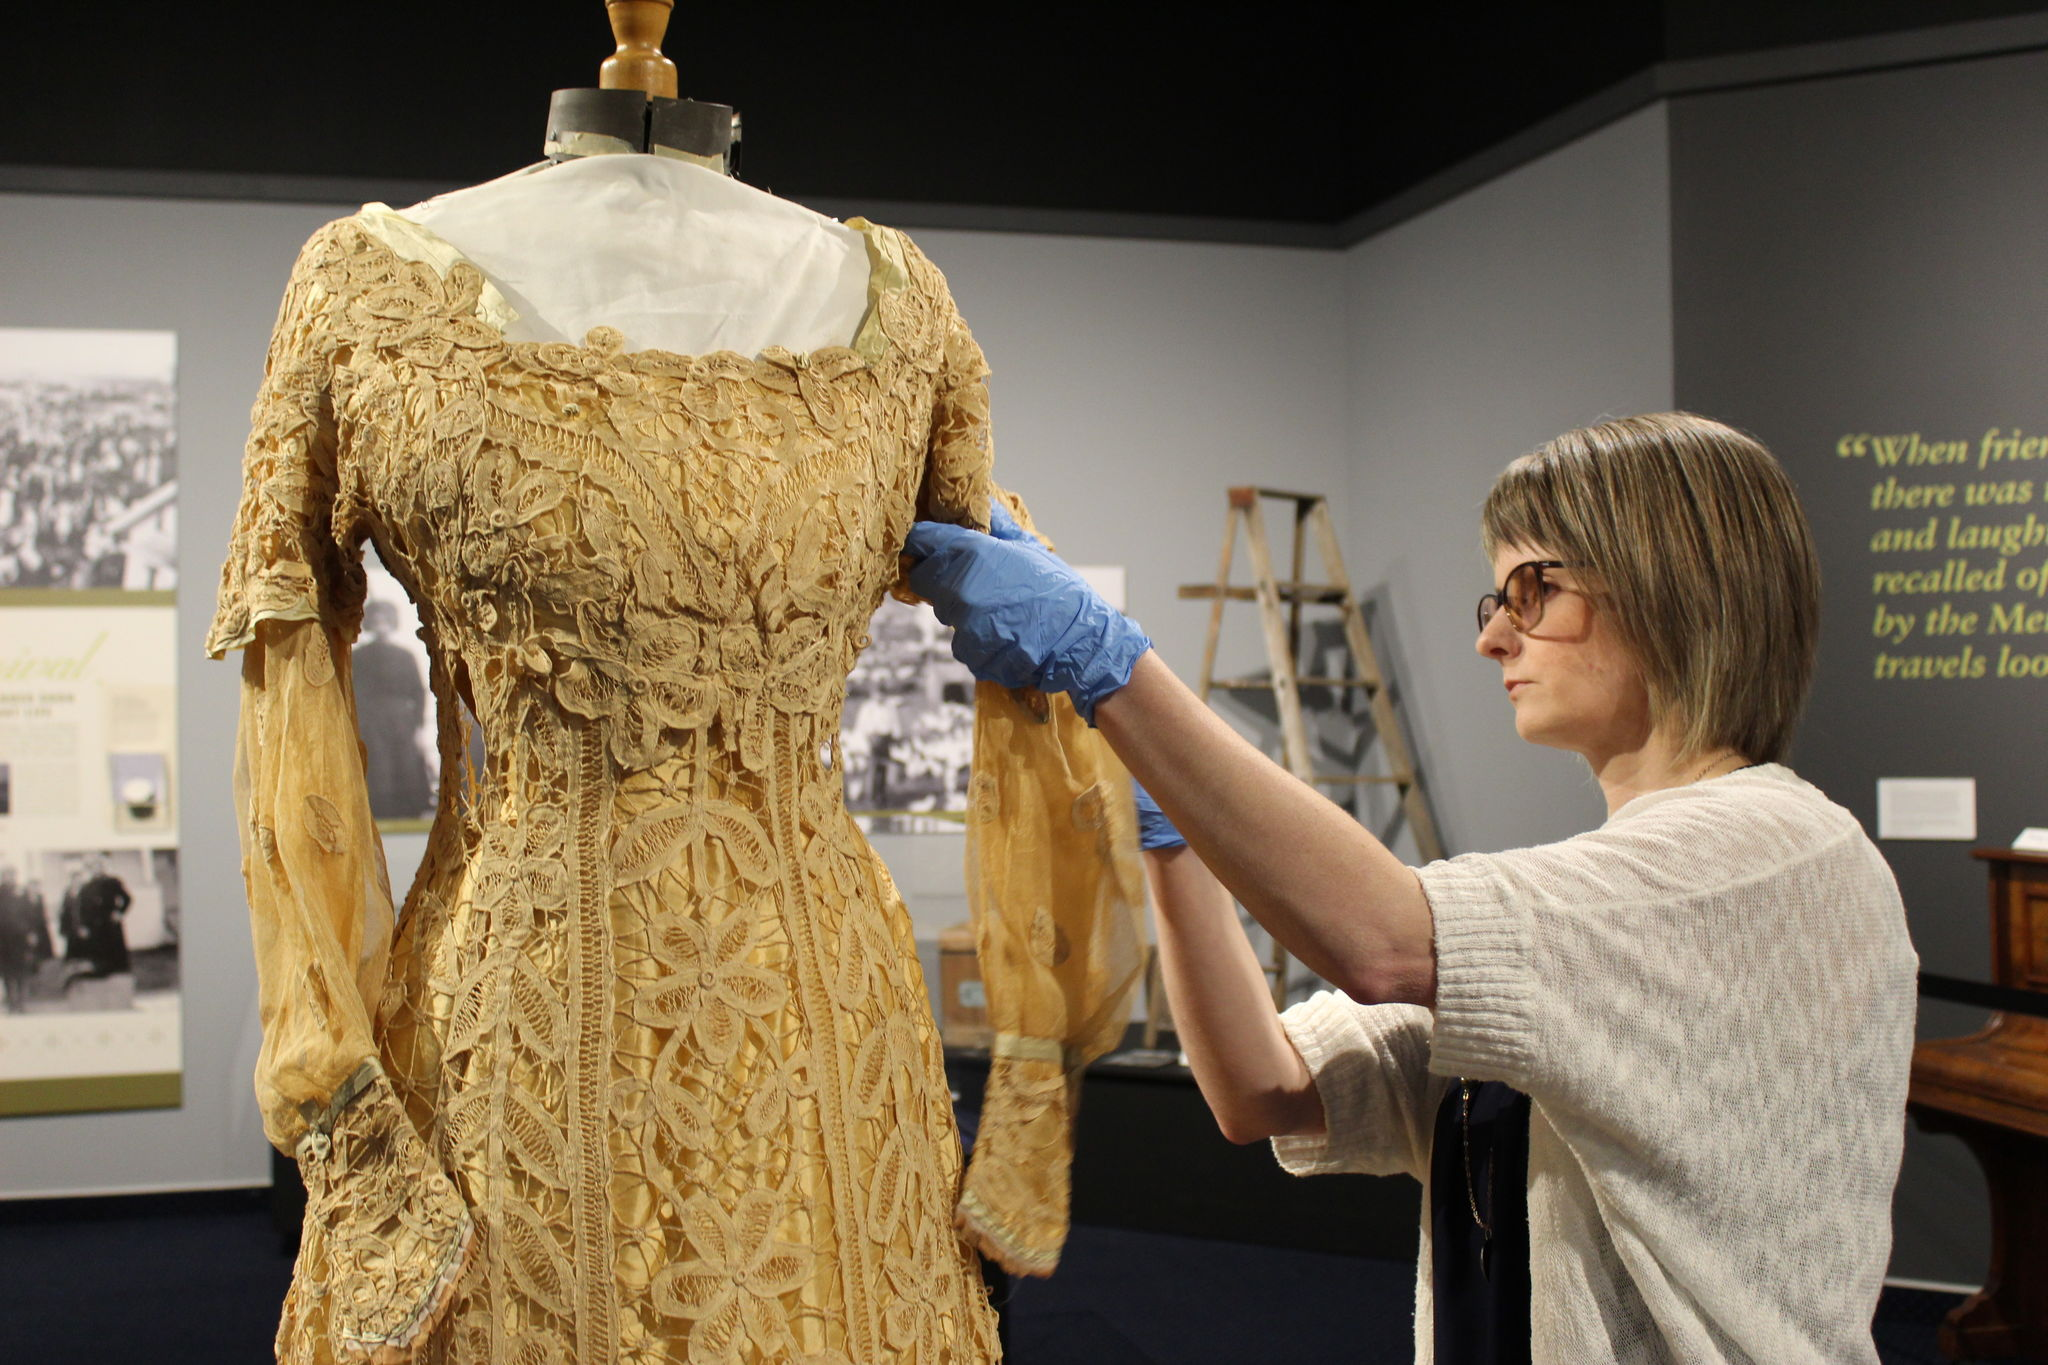 Senior curator Andrea Dyck adjusts a lace dress featured prominently in The Russländer, a new exhibit that has opened in the Gerhard Ens Gallery at Mennonite Heritage Village. The dressed belonged to Maria Heese, who settled in Grunthal.